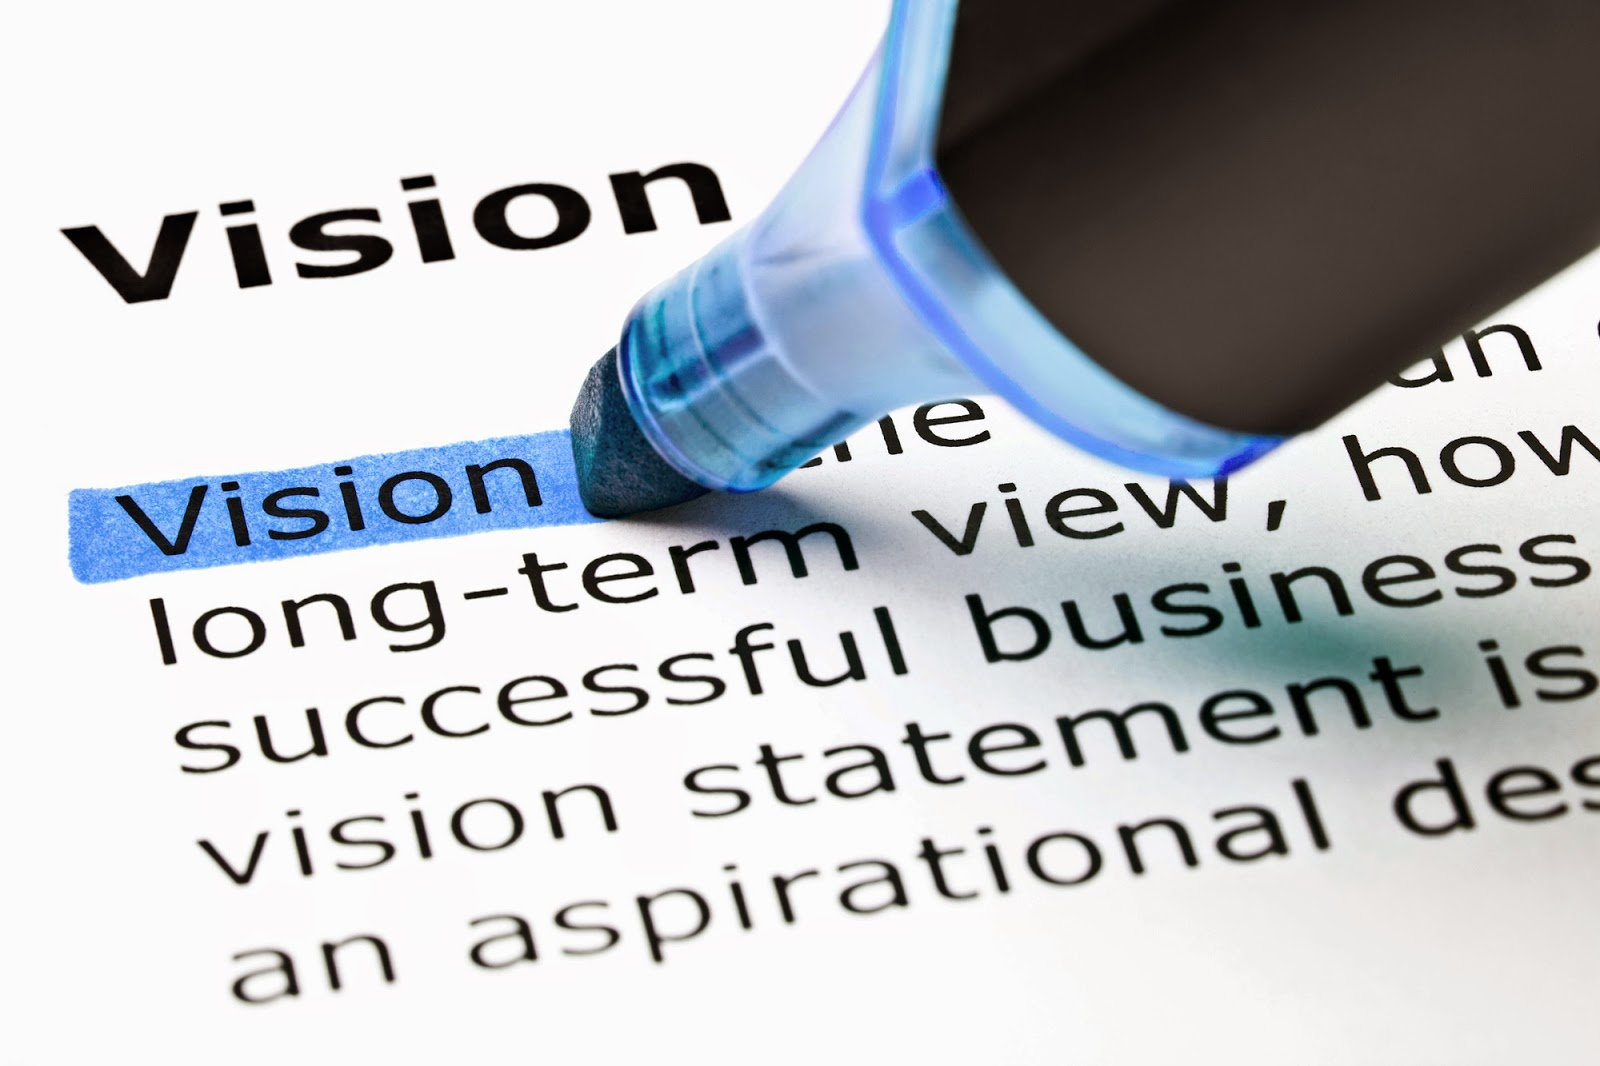 brother jesse blog how to create your own vision board for 2015 how to create your own vision board for 2015 and start winning